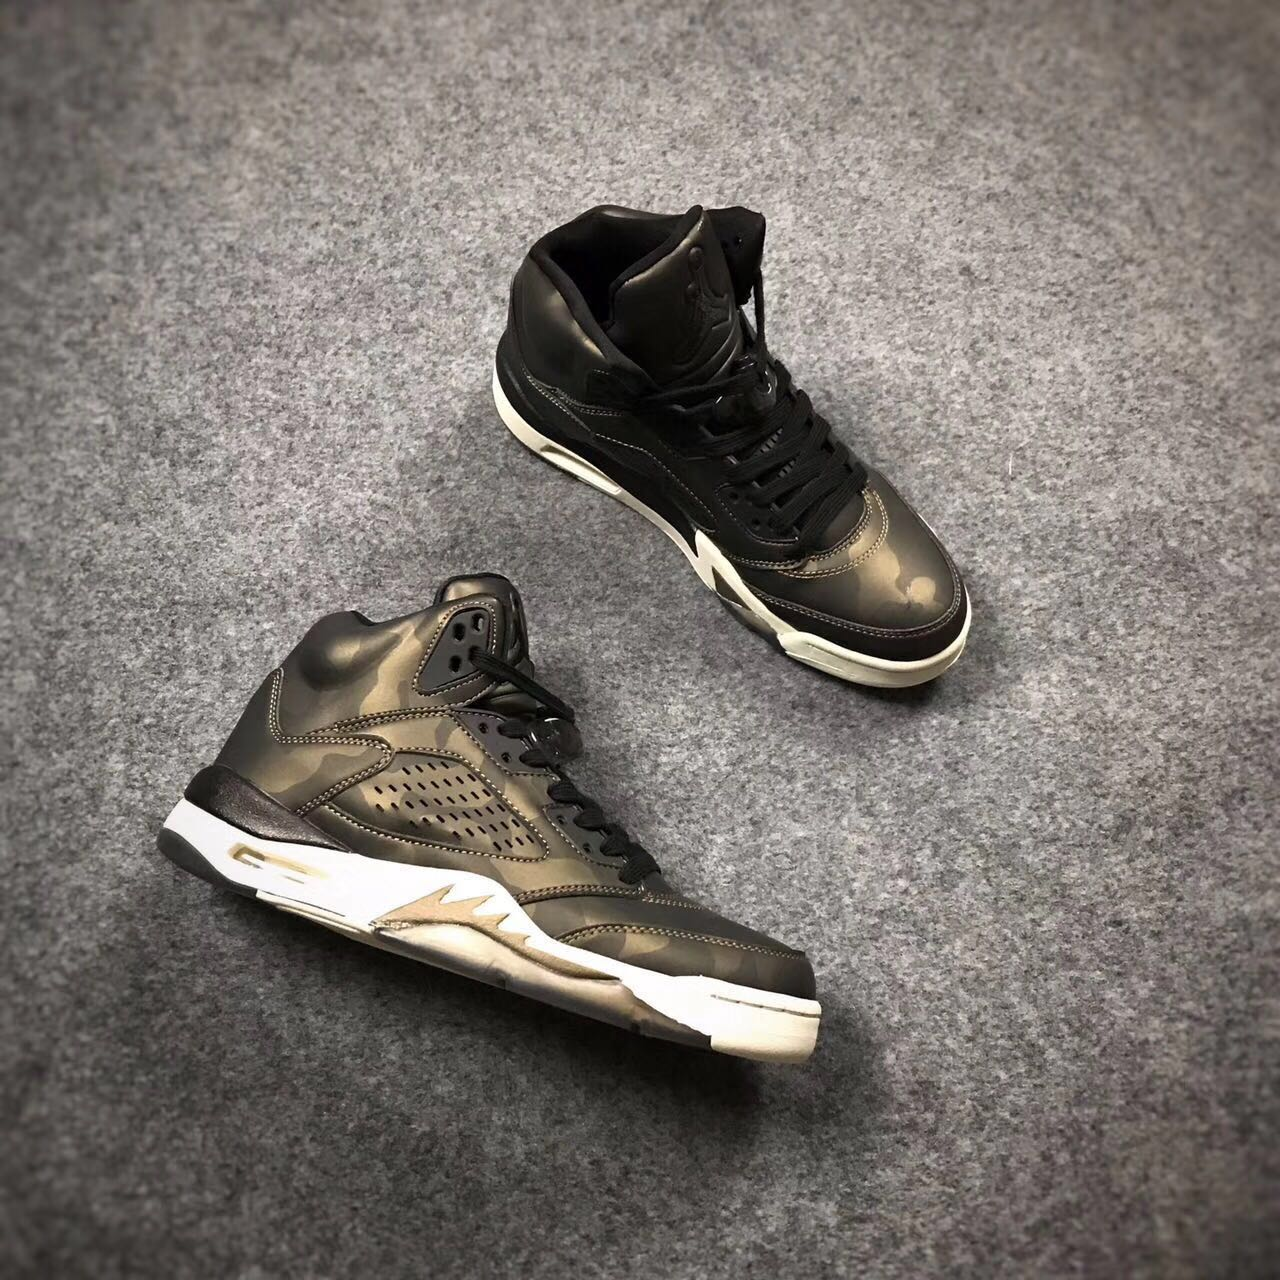 Air Jordan 5 Premium Heiress Metallic Field Shoes